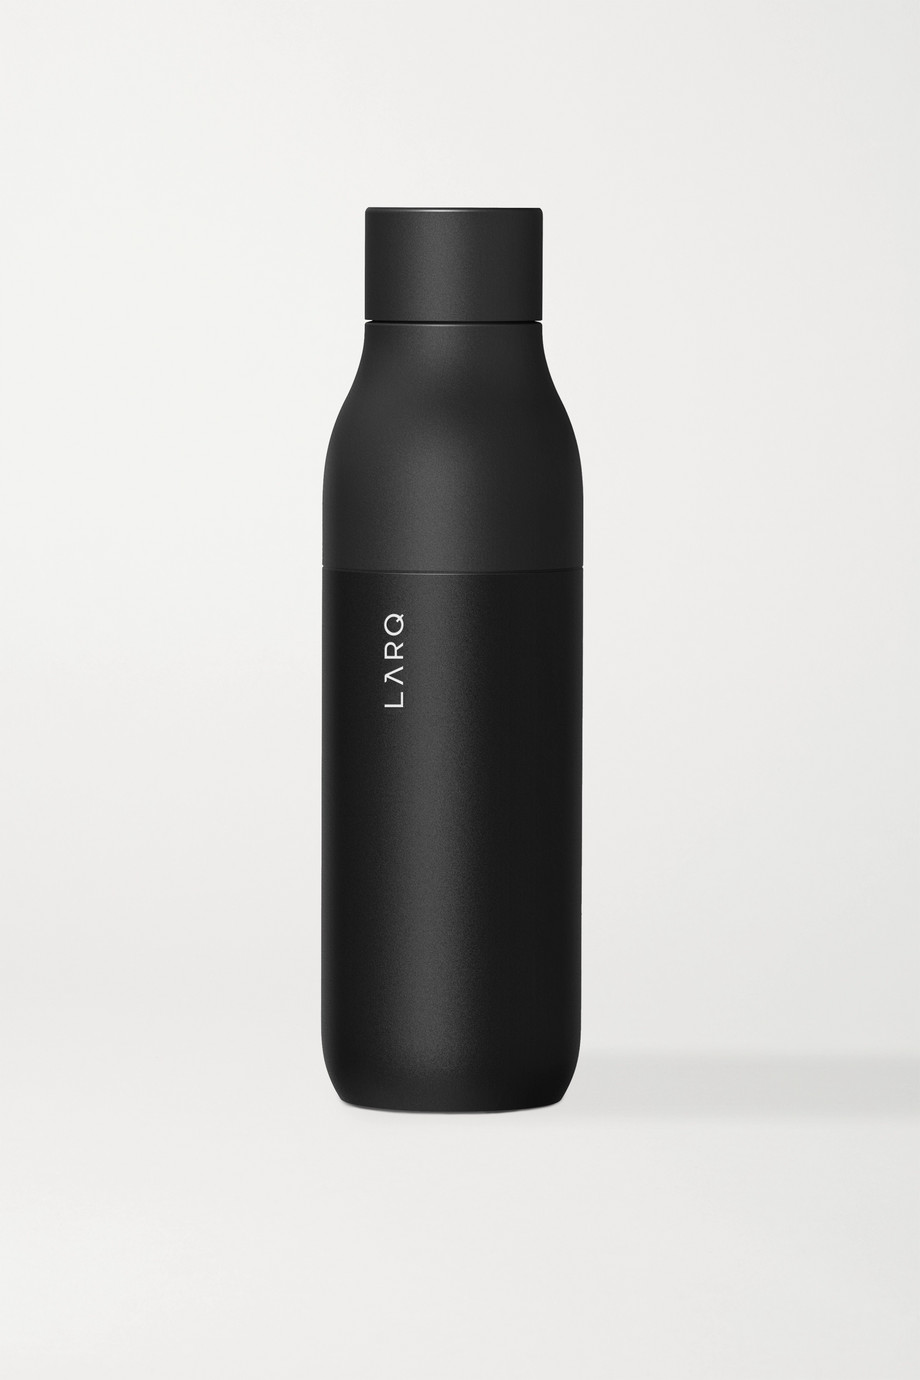 LARQ LARQ Bottle - Obsidian Black, 500ml